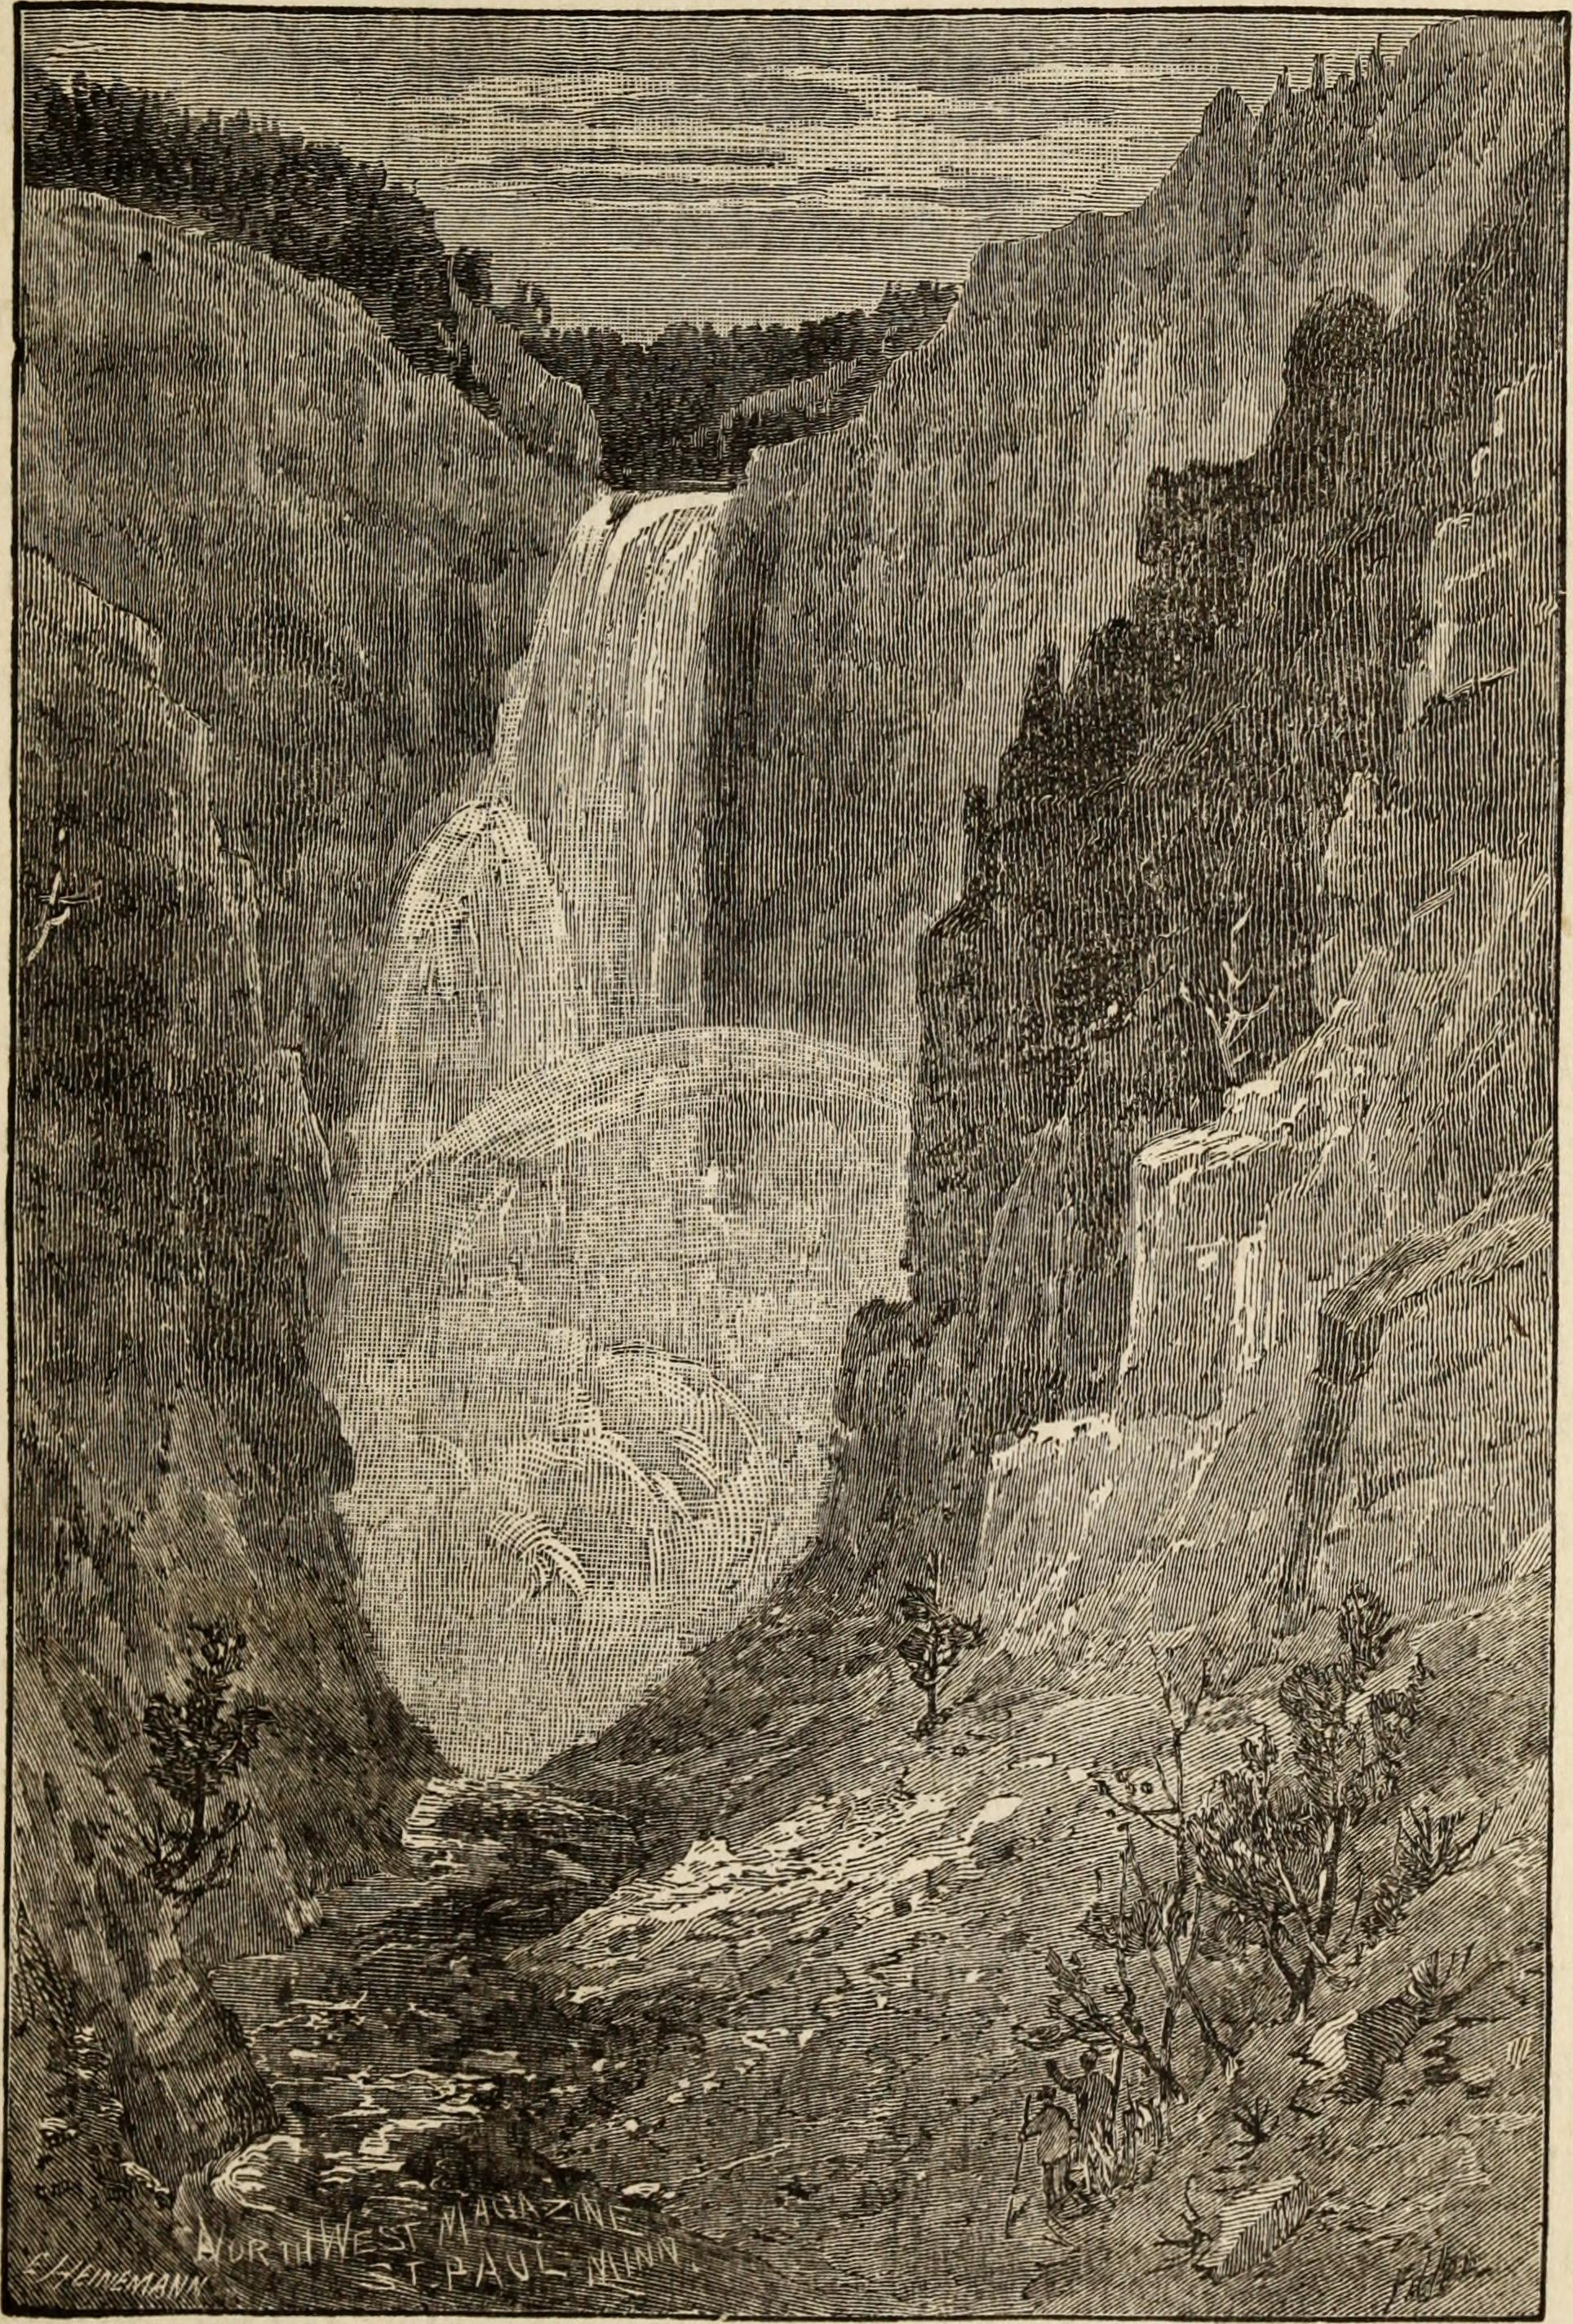 The Great Chasm